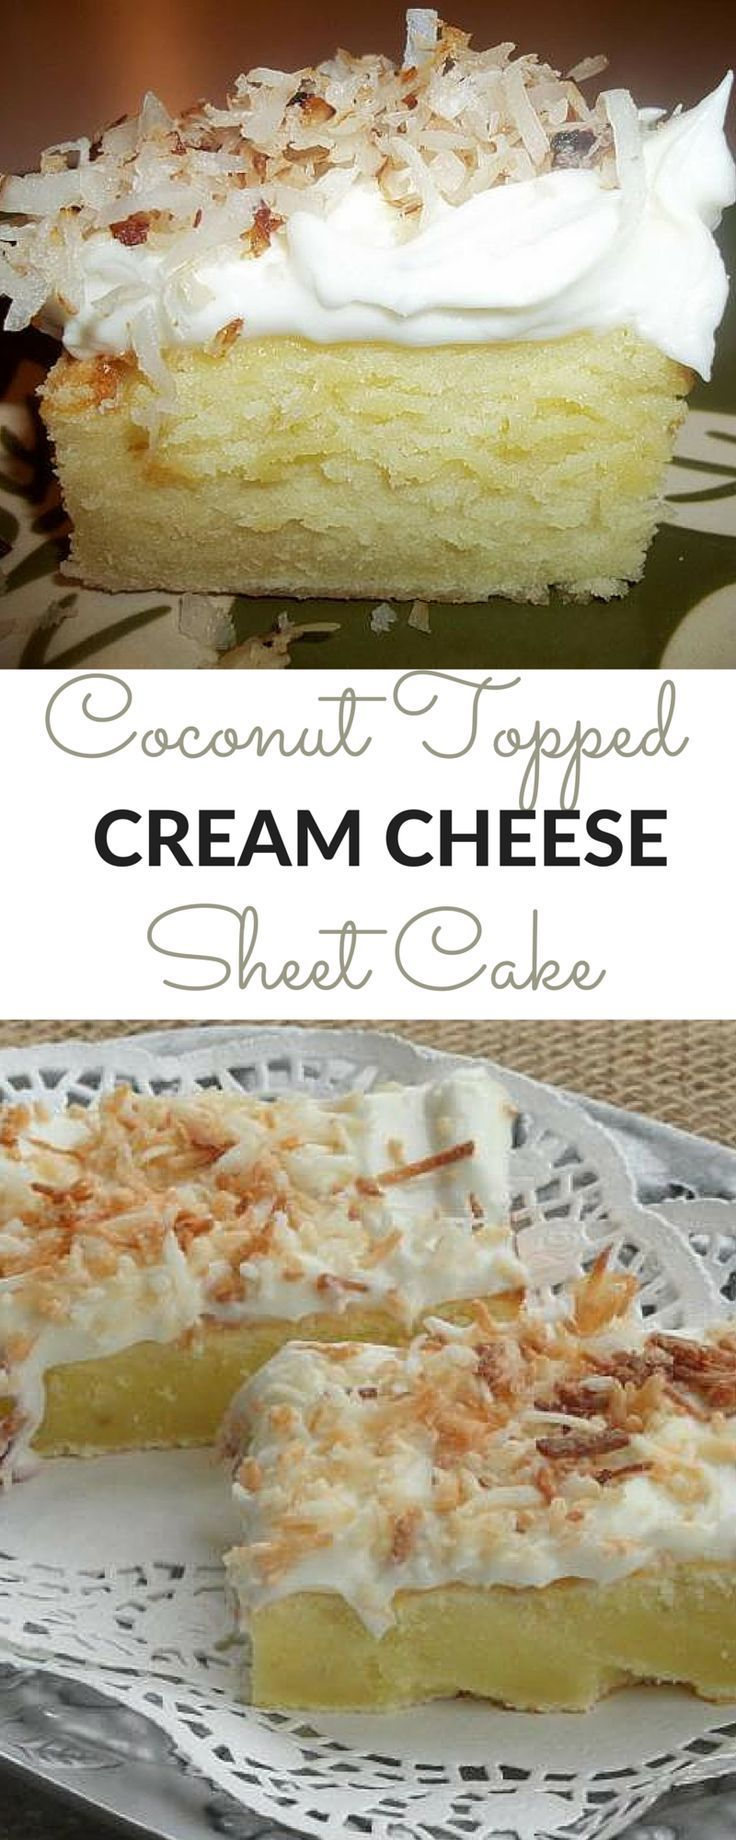 """Coconut Topped Cream Cheese Sheet Cake 